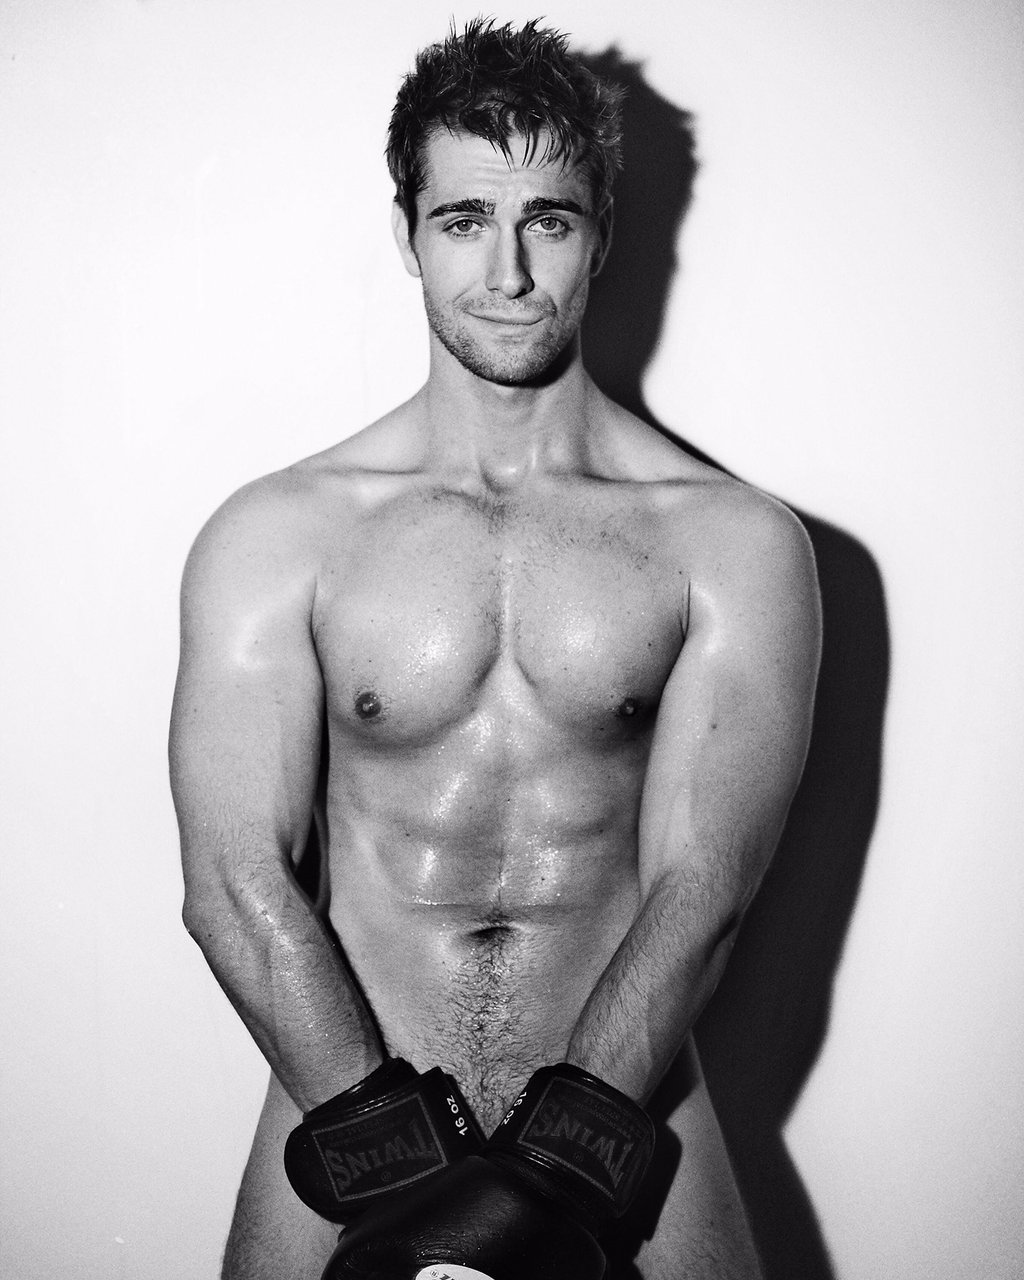 Shirtless Men On The Blog: Mauro Gentile Mostra Il Sedere